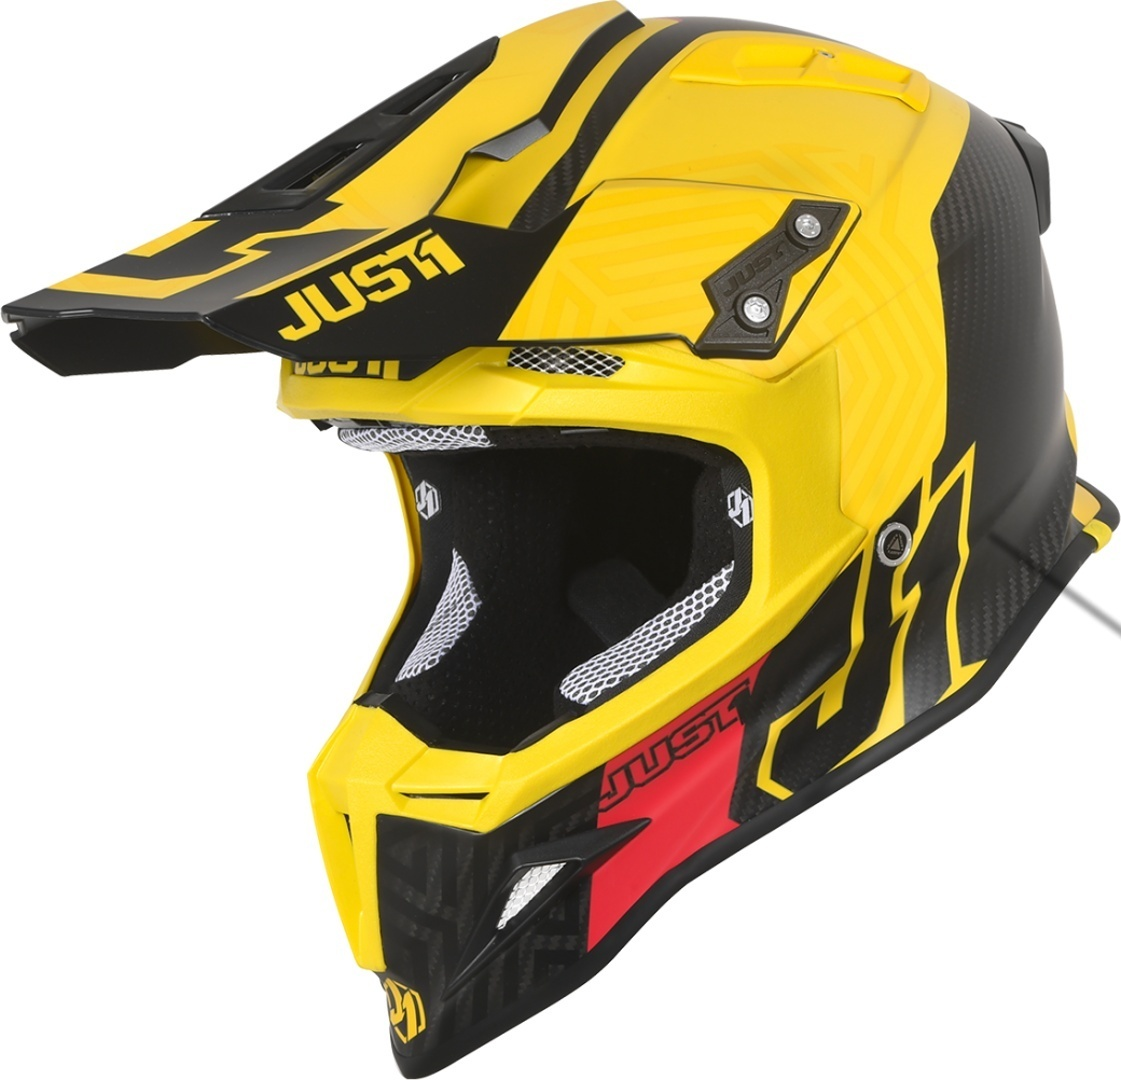 Just1 J12 Syncro Carbon Motocross Helm, schwarz-gelb, Größe M, schwarz-gelb, Größe M